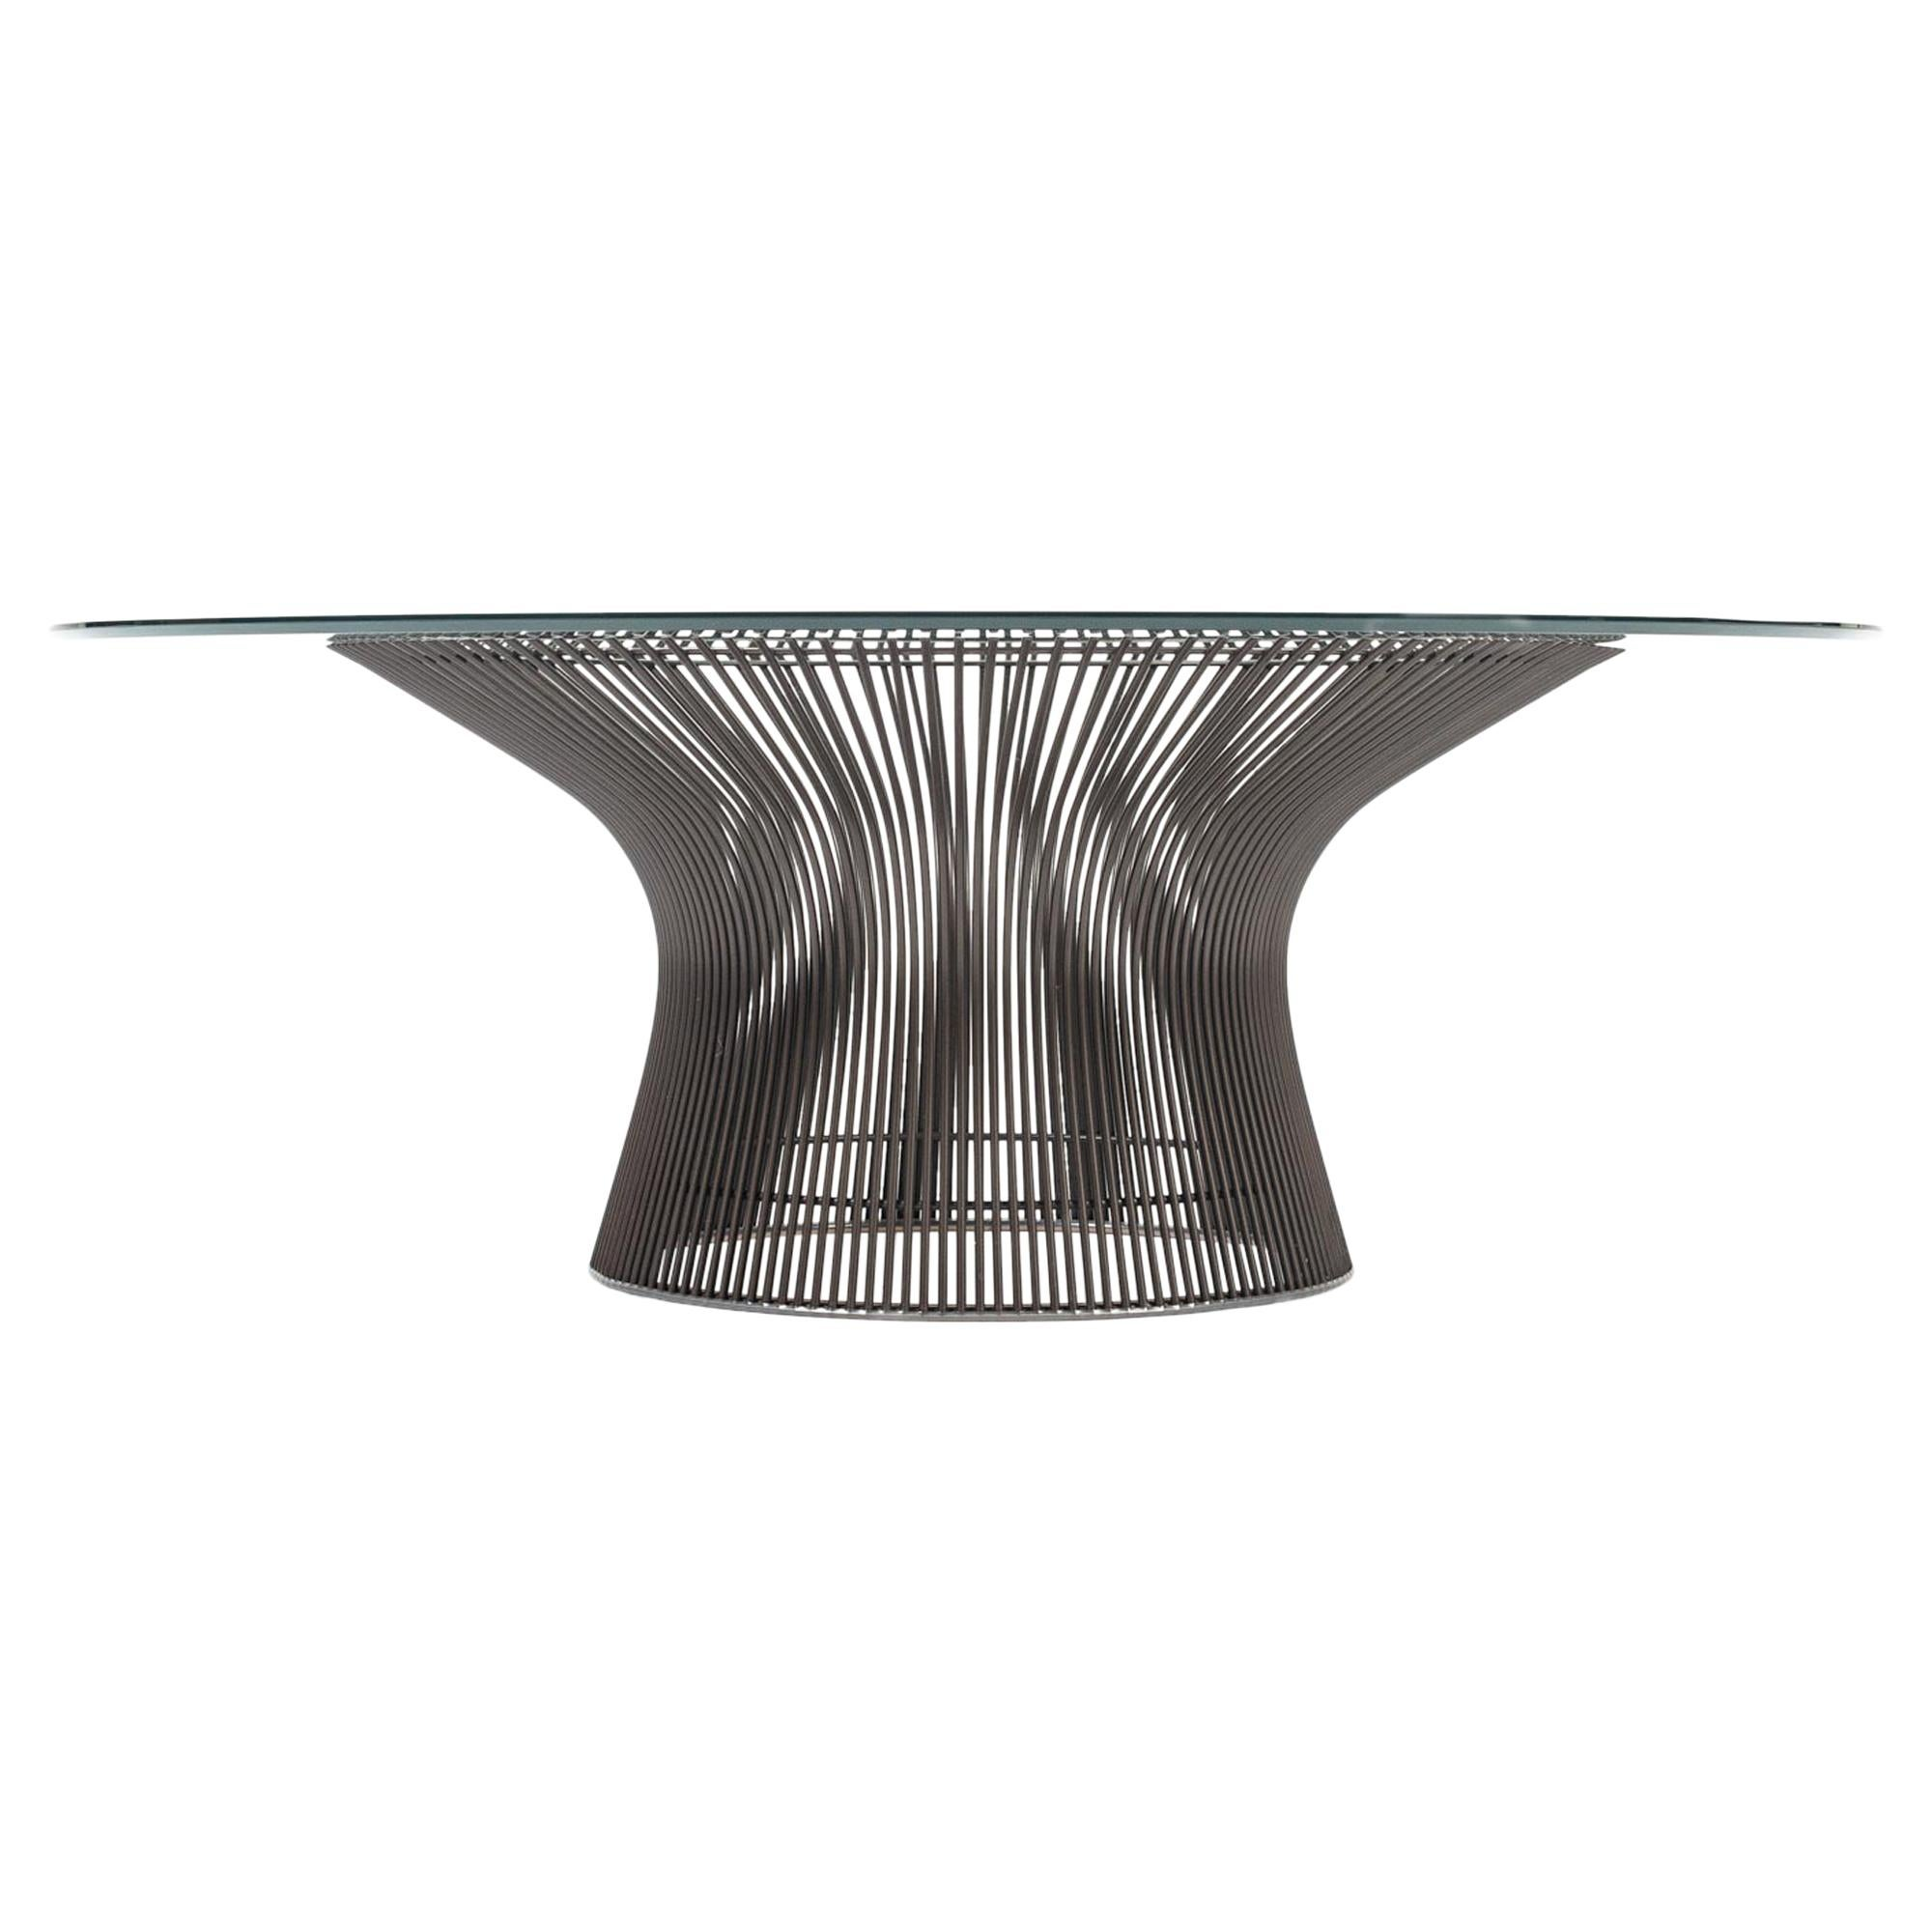 Authentic Warren Platner Coffee Table with Glass Top